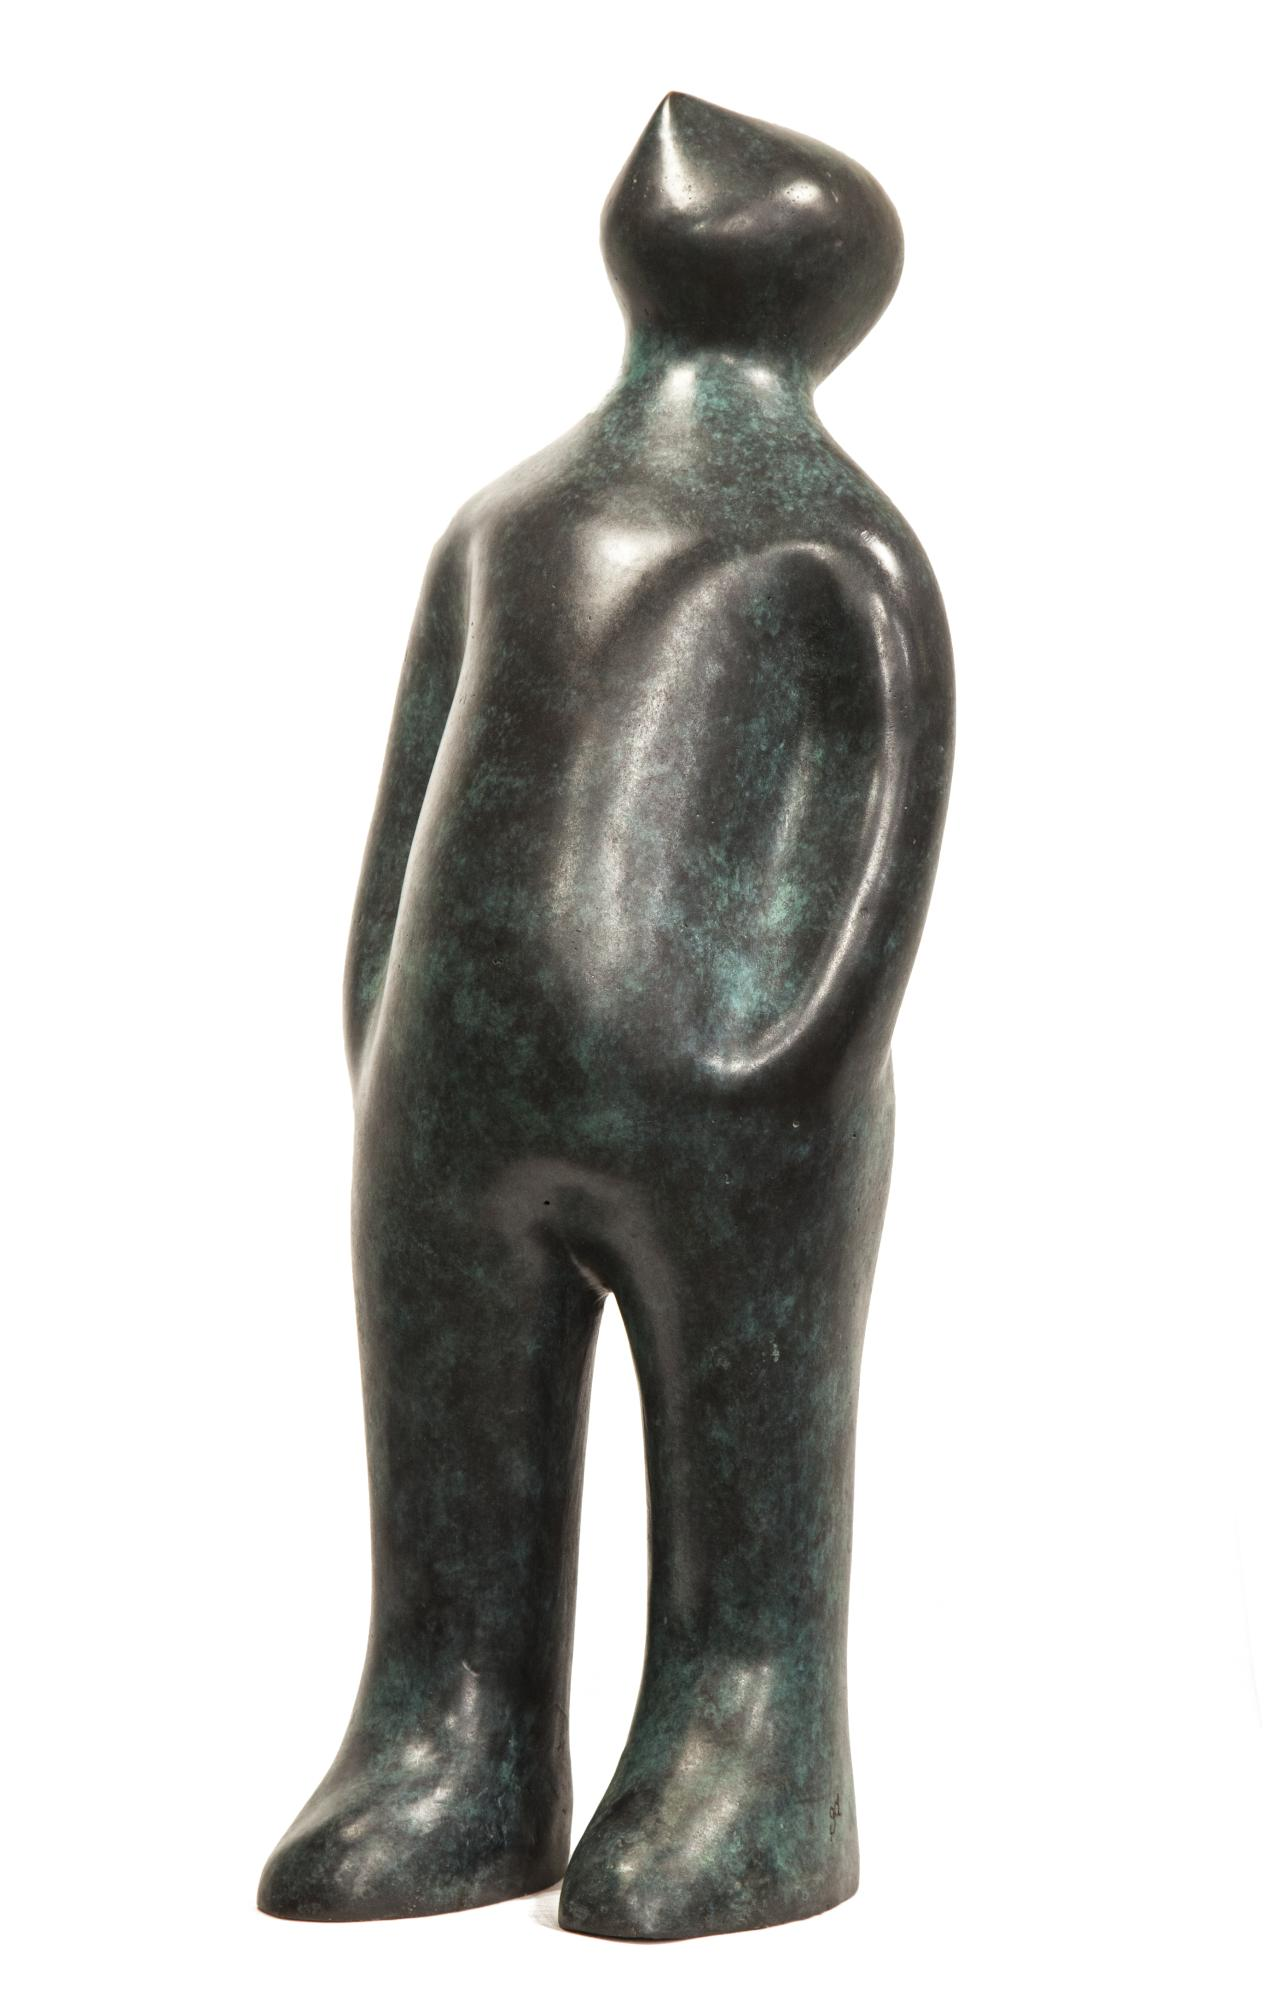 Lot 38 - Sculpture: Guido Deleu, The Visitor , Bronze, 75cm high by 28cm wide by 21cm deep